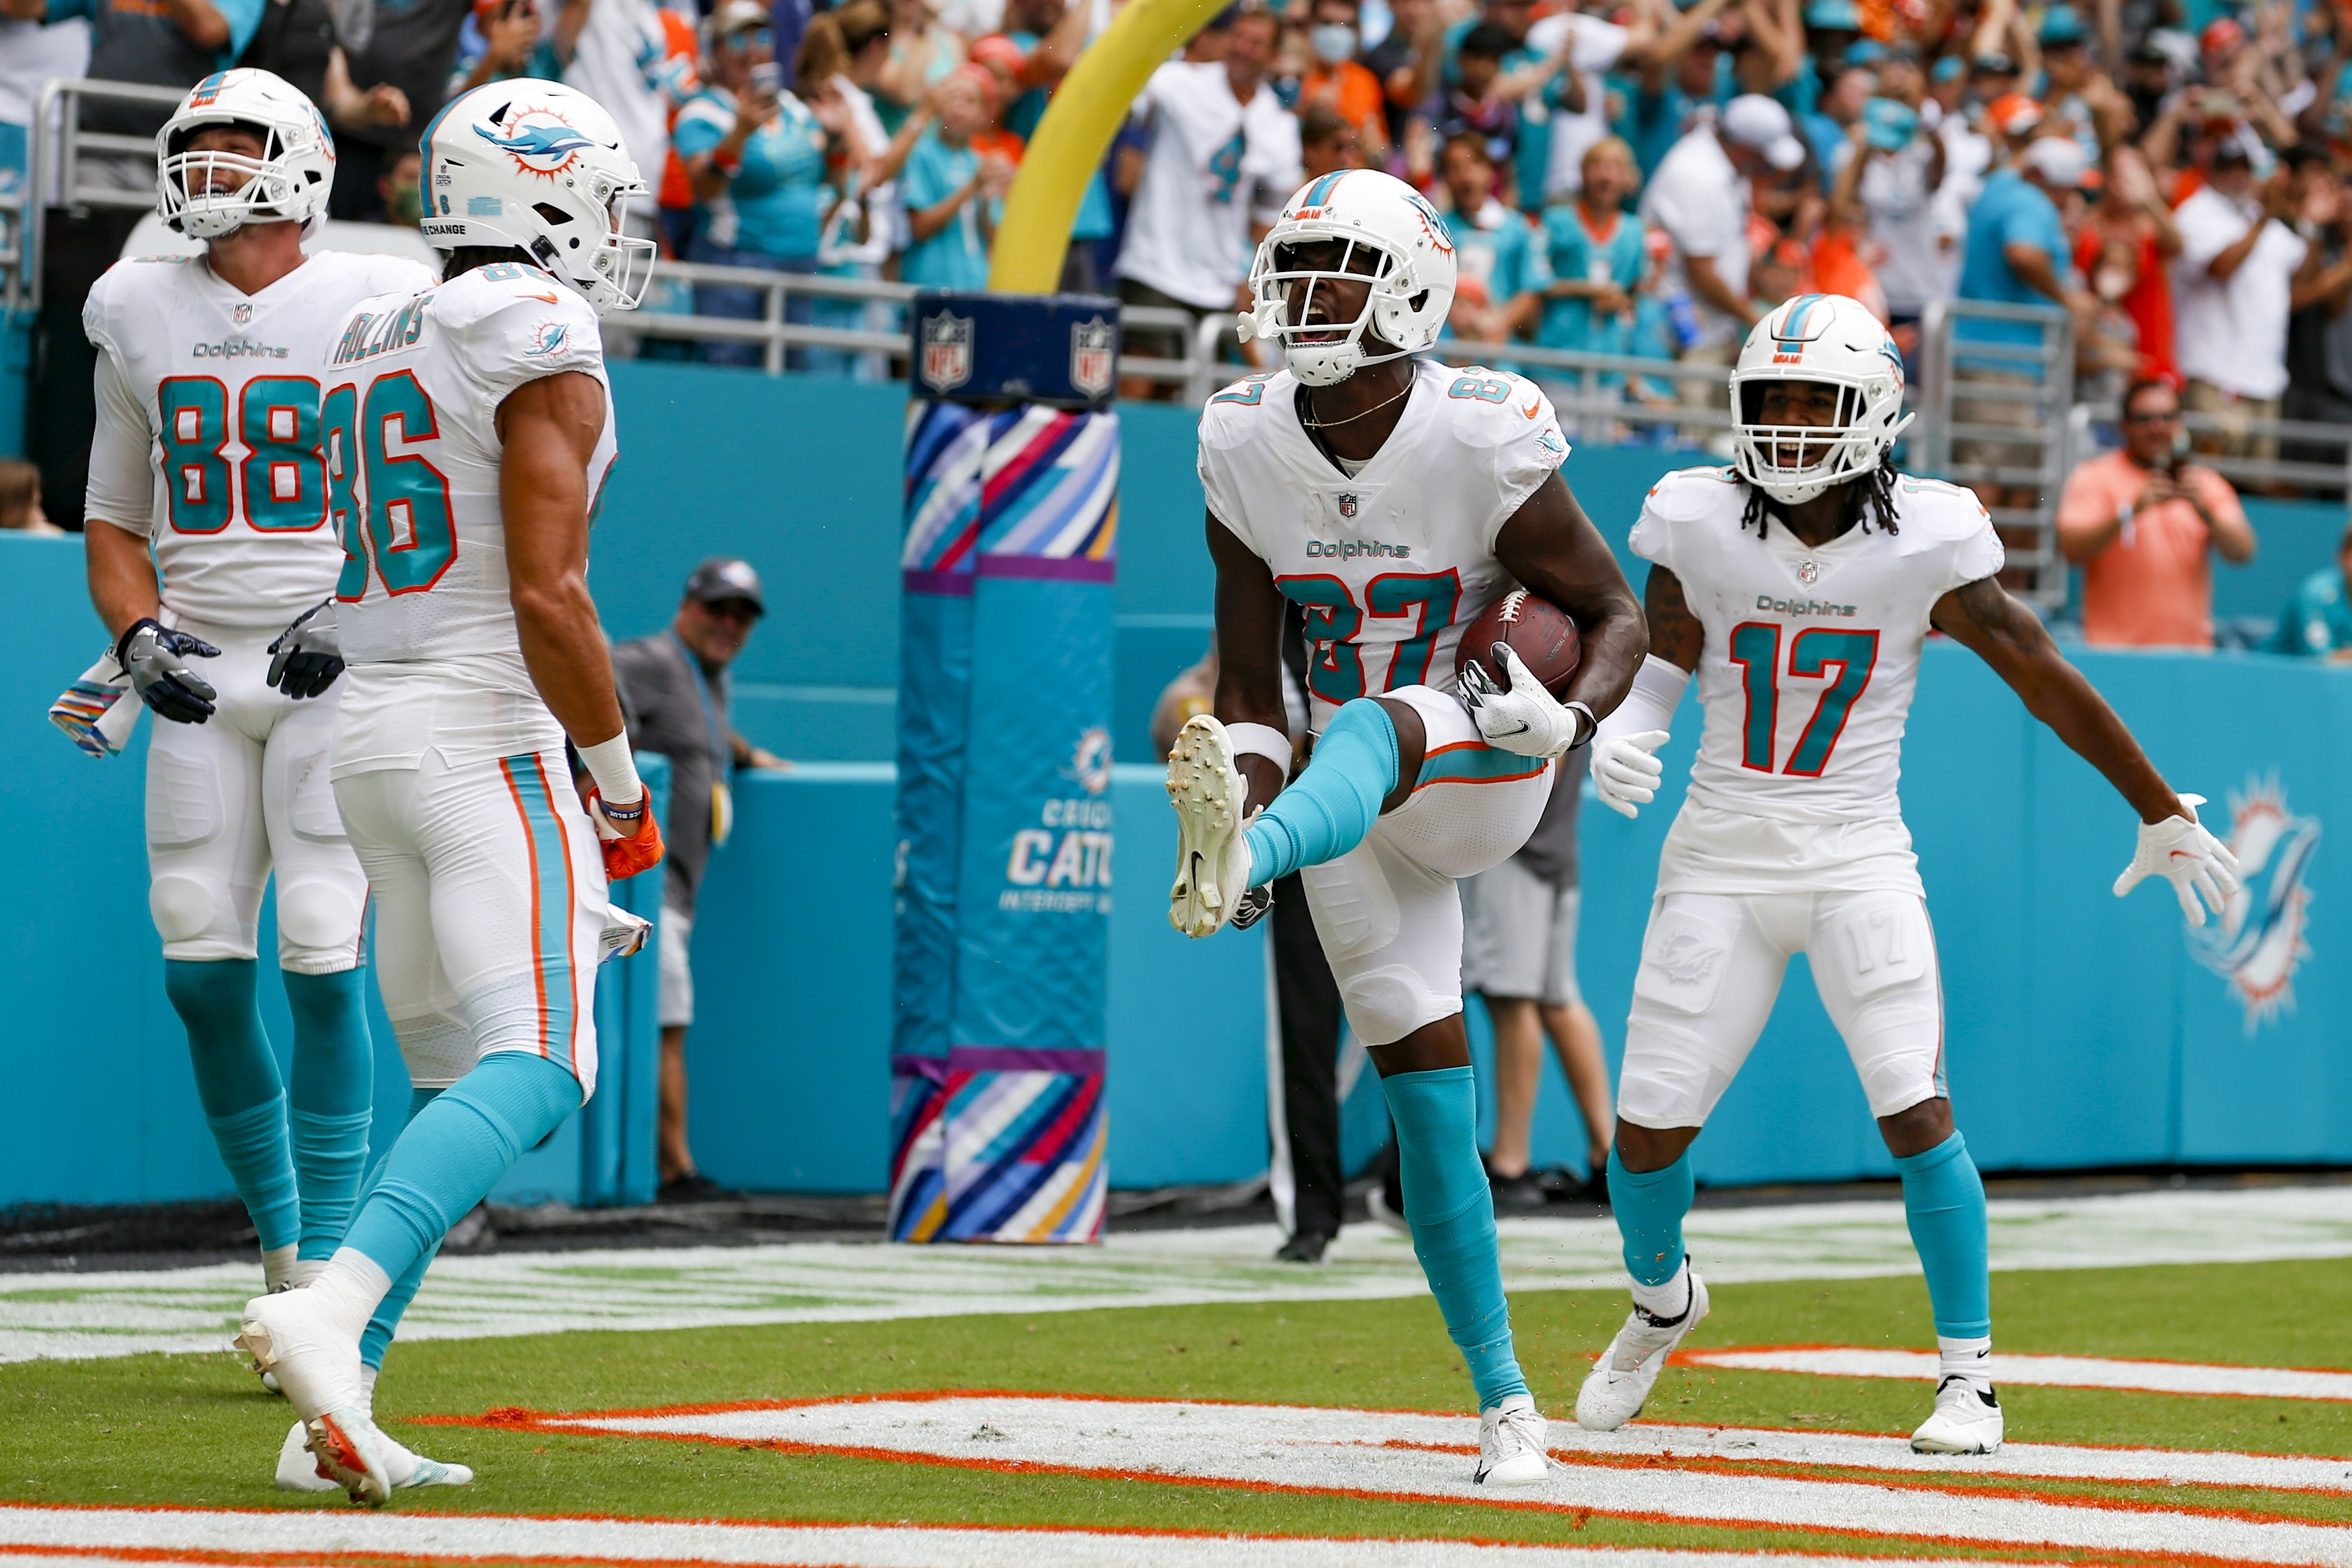 NFL: OCT 24 Falcons at Dolphins